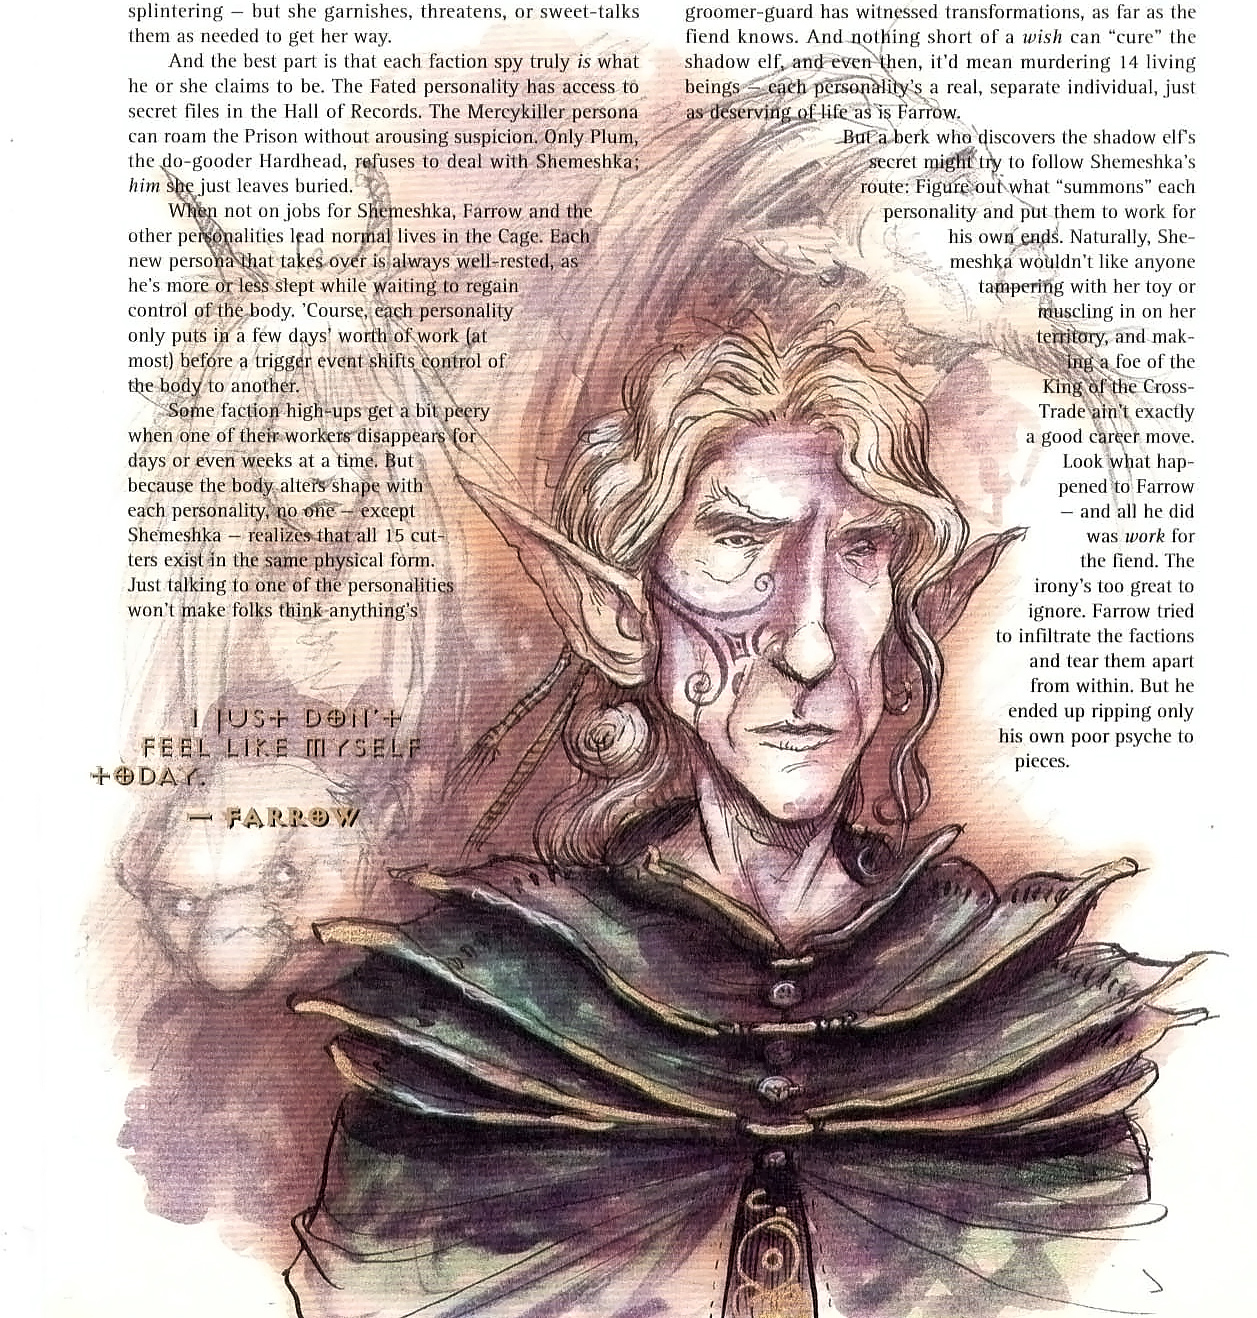 tiefling elf Farrow, di Sigil - una delle sue 15 personalità è una tiefling! - by Tony Diterlizzi TSR - Uncaged, Faces of Sigil (1996-03) © Wizards of the Coast & Hasbro